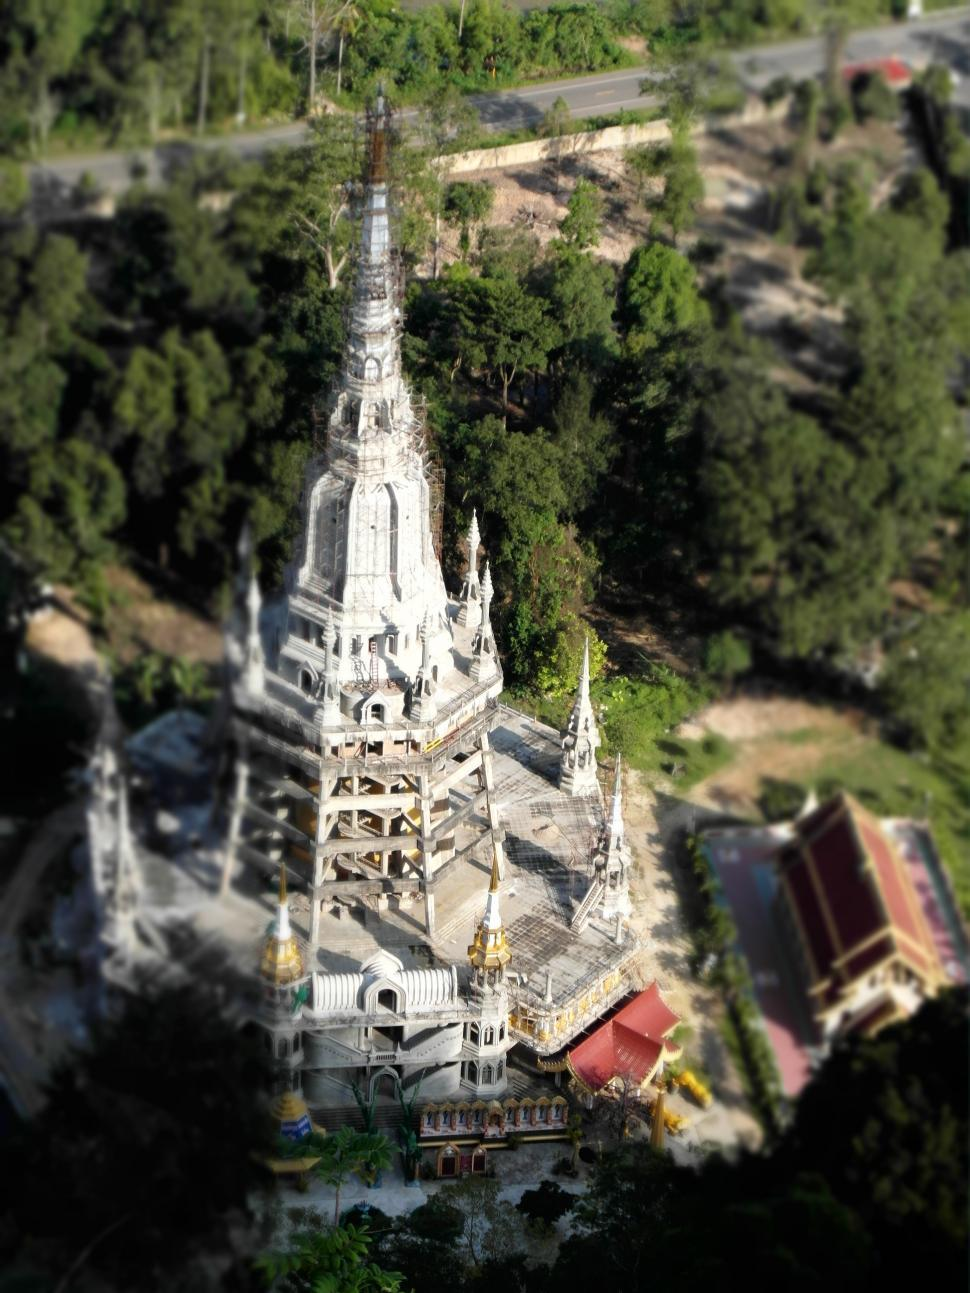 Download Free Stock HD Photo of Aerial of a Temple Tower with Miniature Effect Online